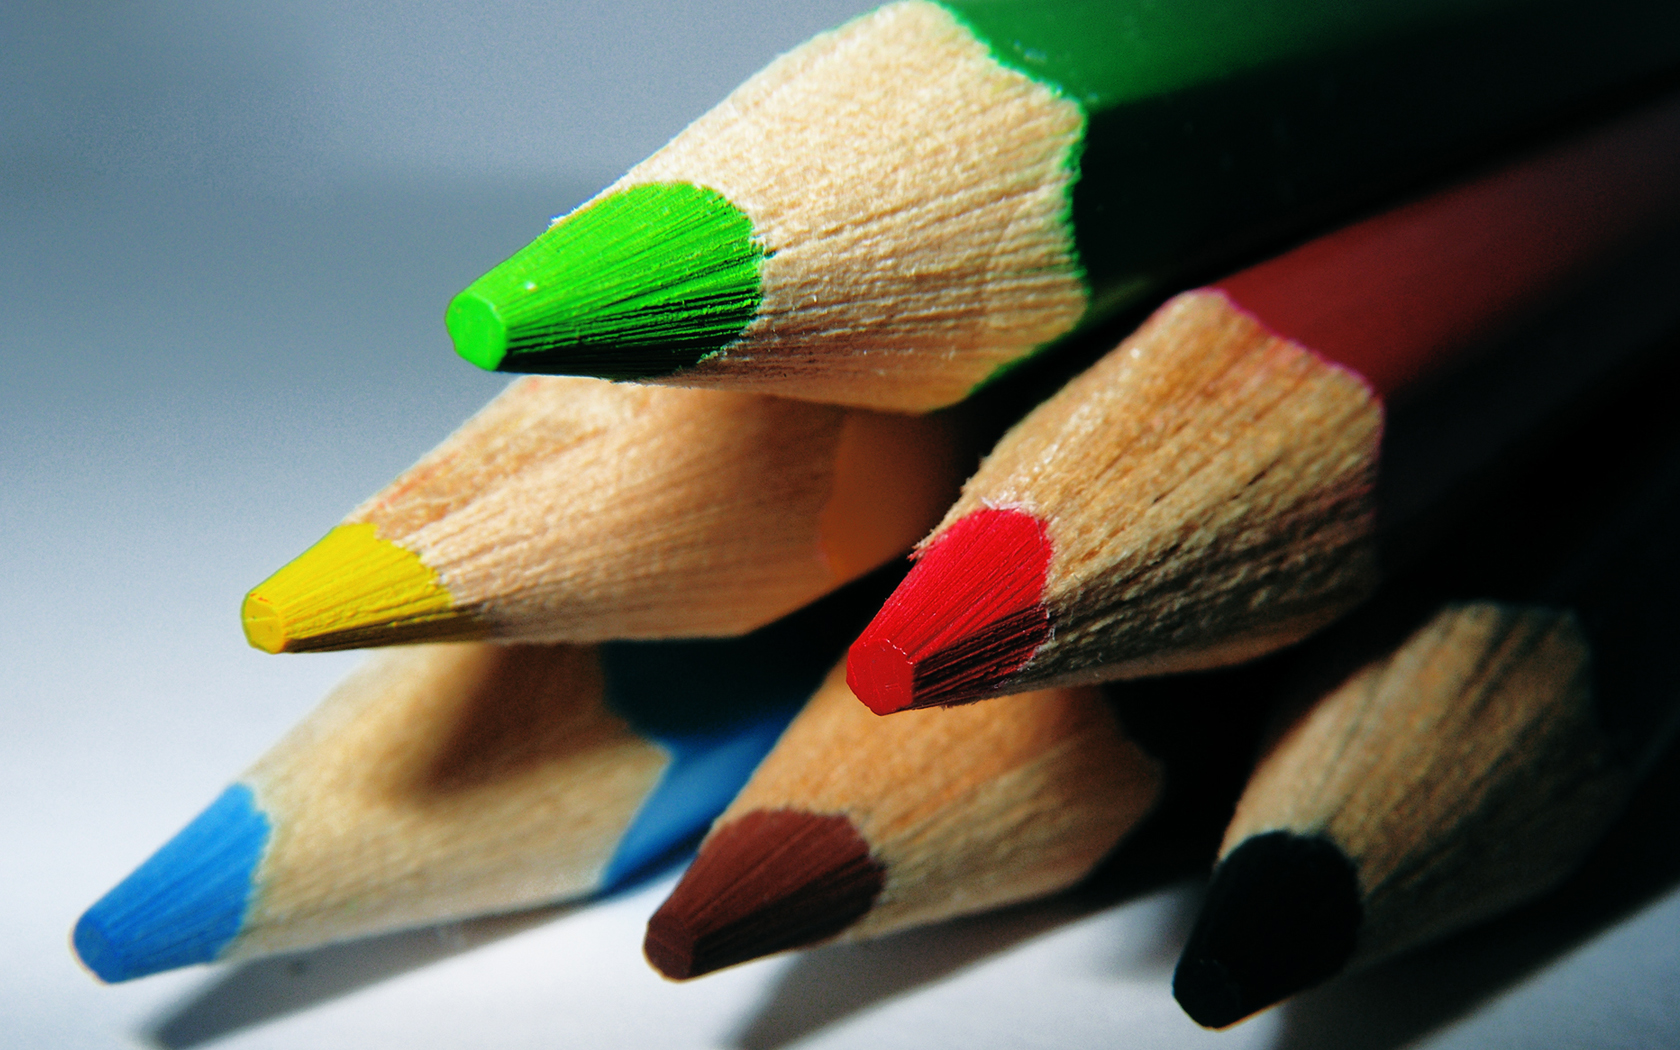 Pencil PNG images free download